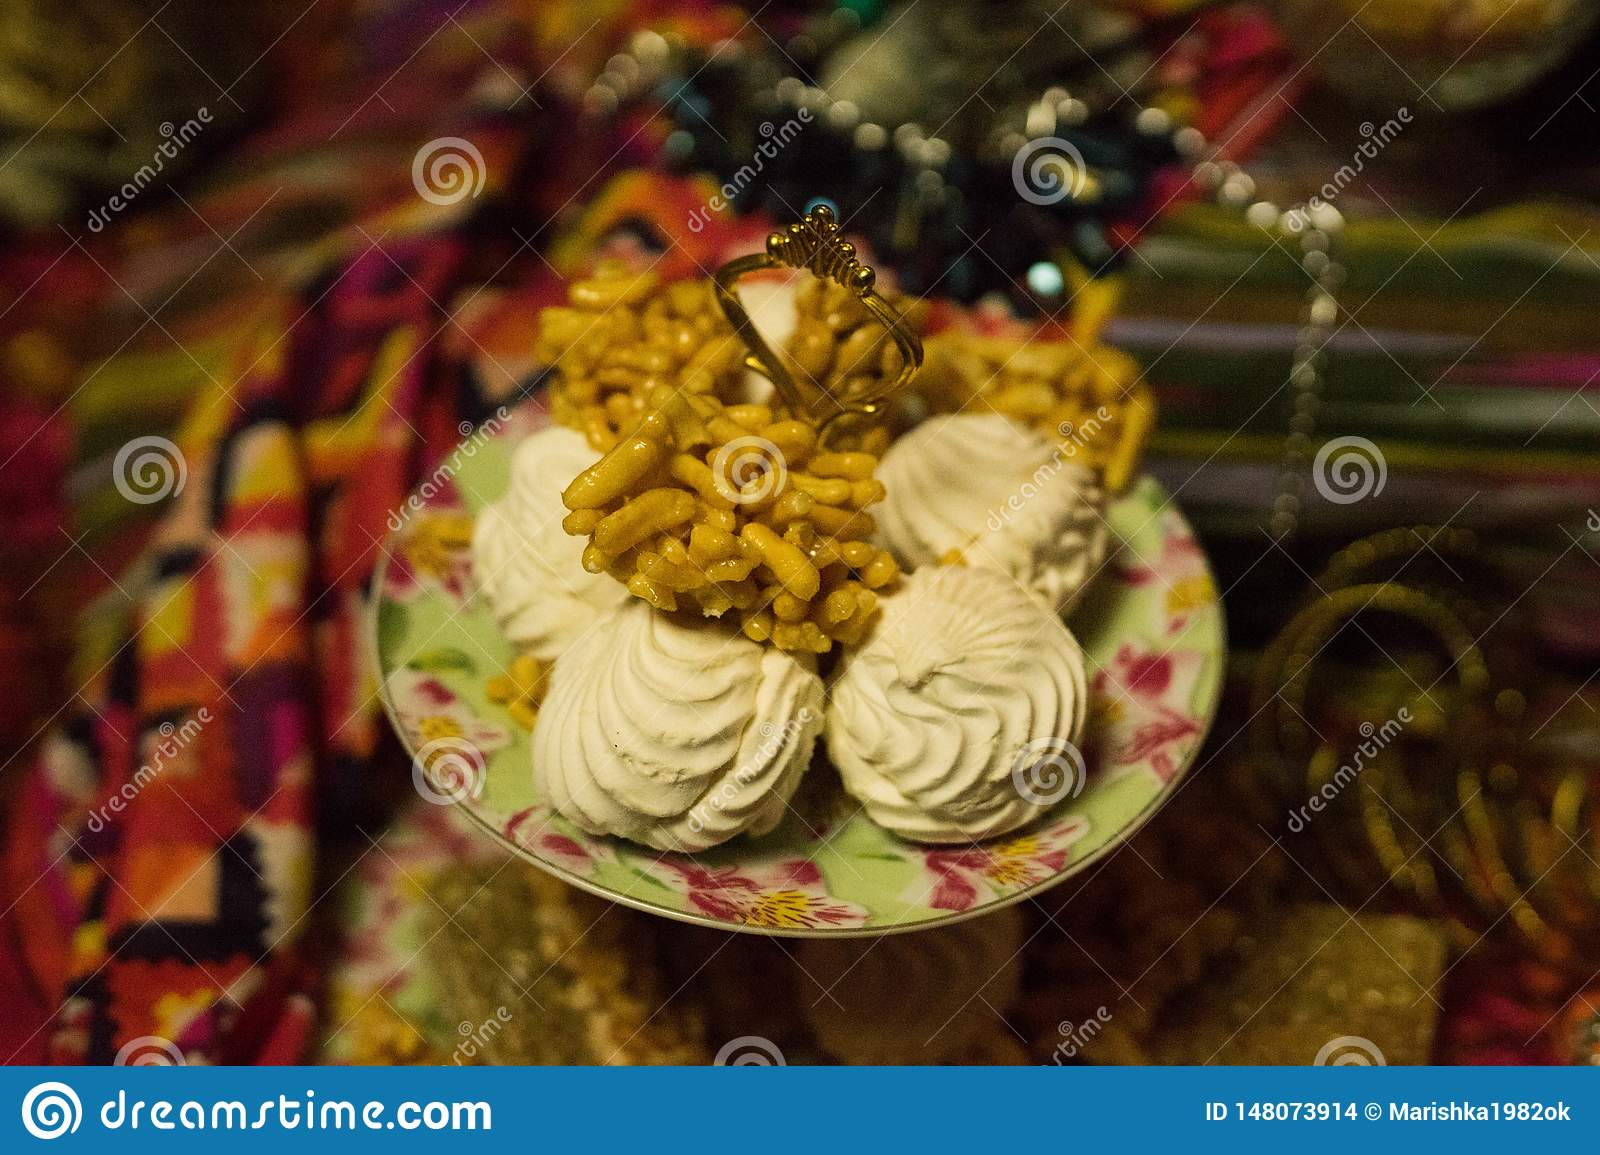 Eastern sweets in a vase